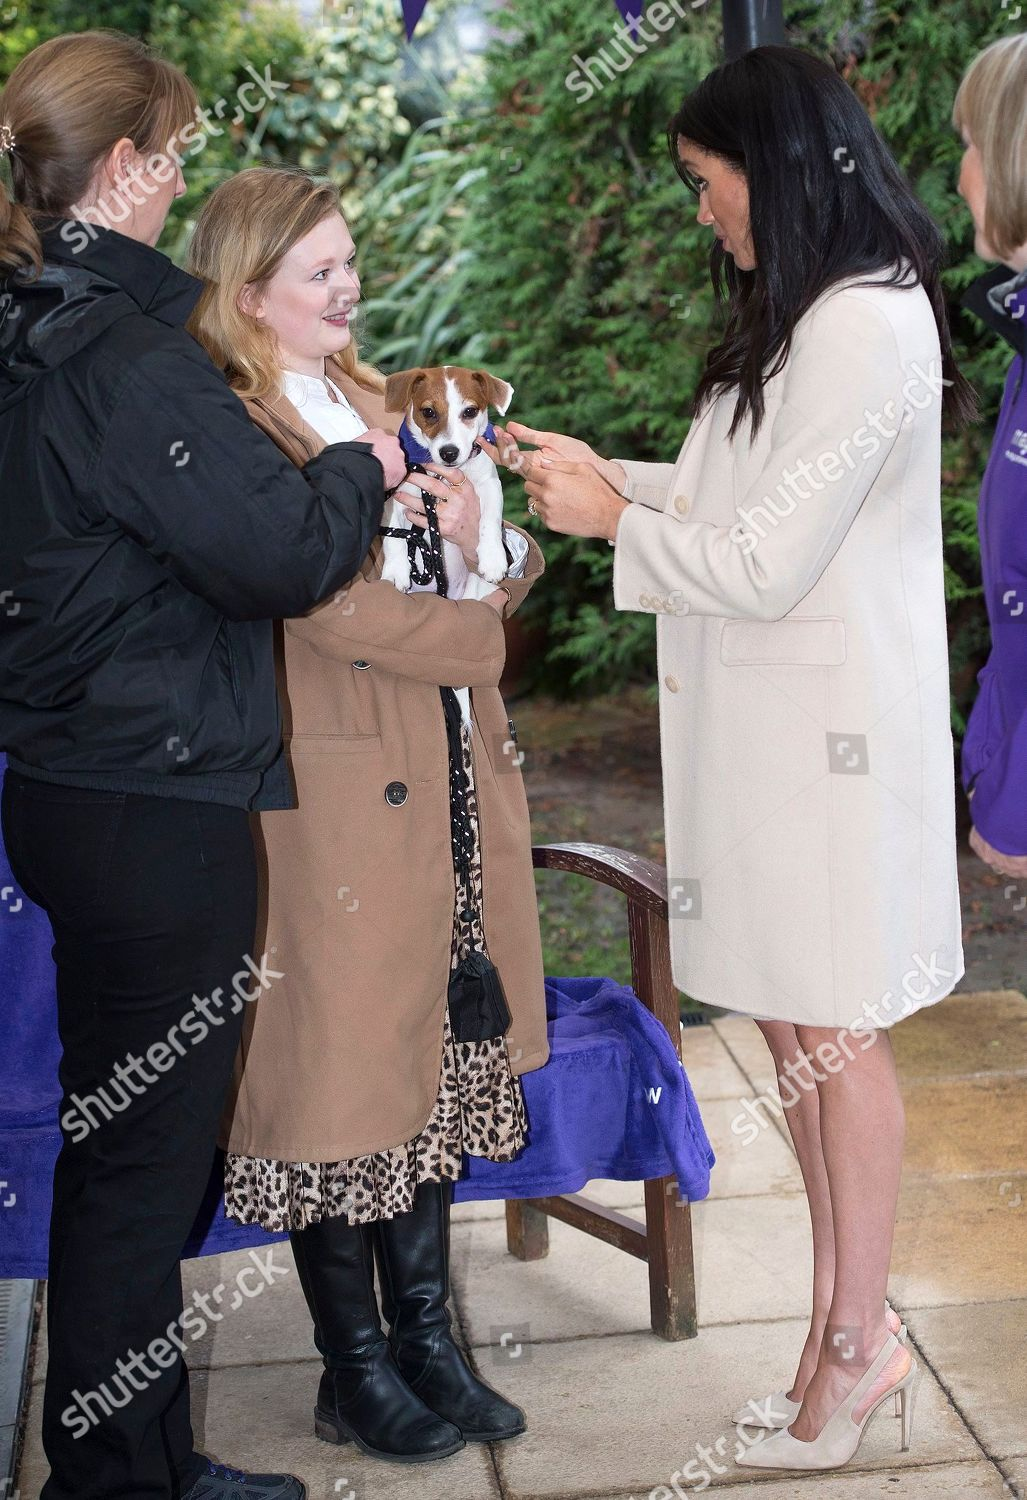 6ae703603fe38 Meghan Duchess of Sussex visit to 'Mayhew' animal welfare charity, London,  UK Stock Image by Shutterstock for editorial use, Jan 16, 2019